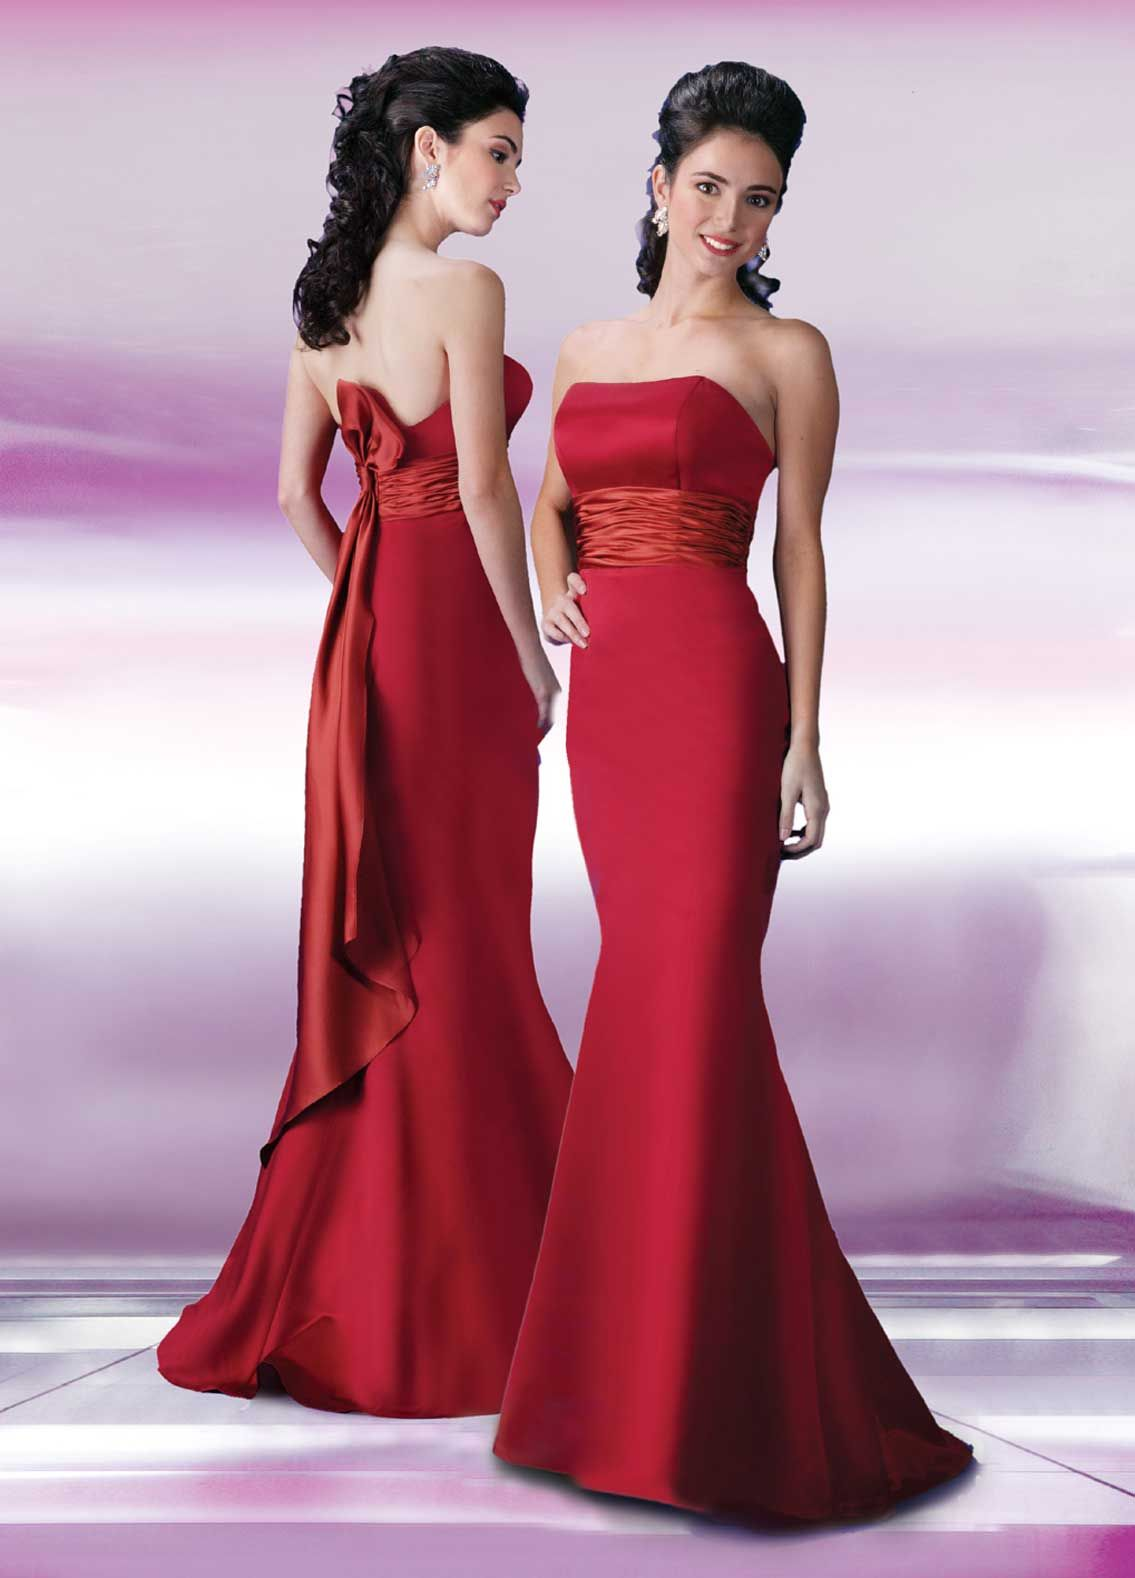 Red and black bridesmaid dresses google search wedding dresses red and black bridesmaid dresses google search ombrellifo Gallery